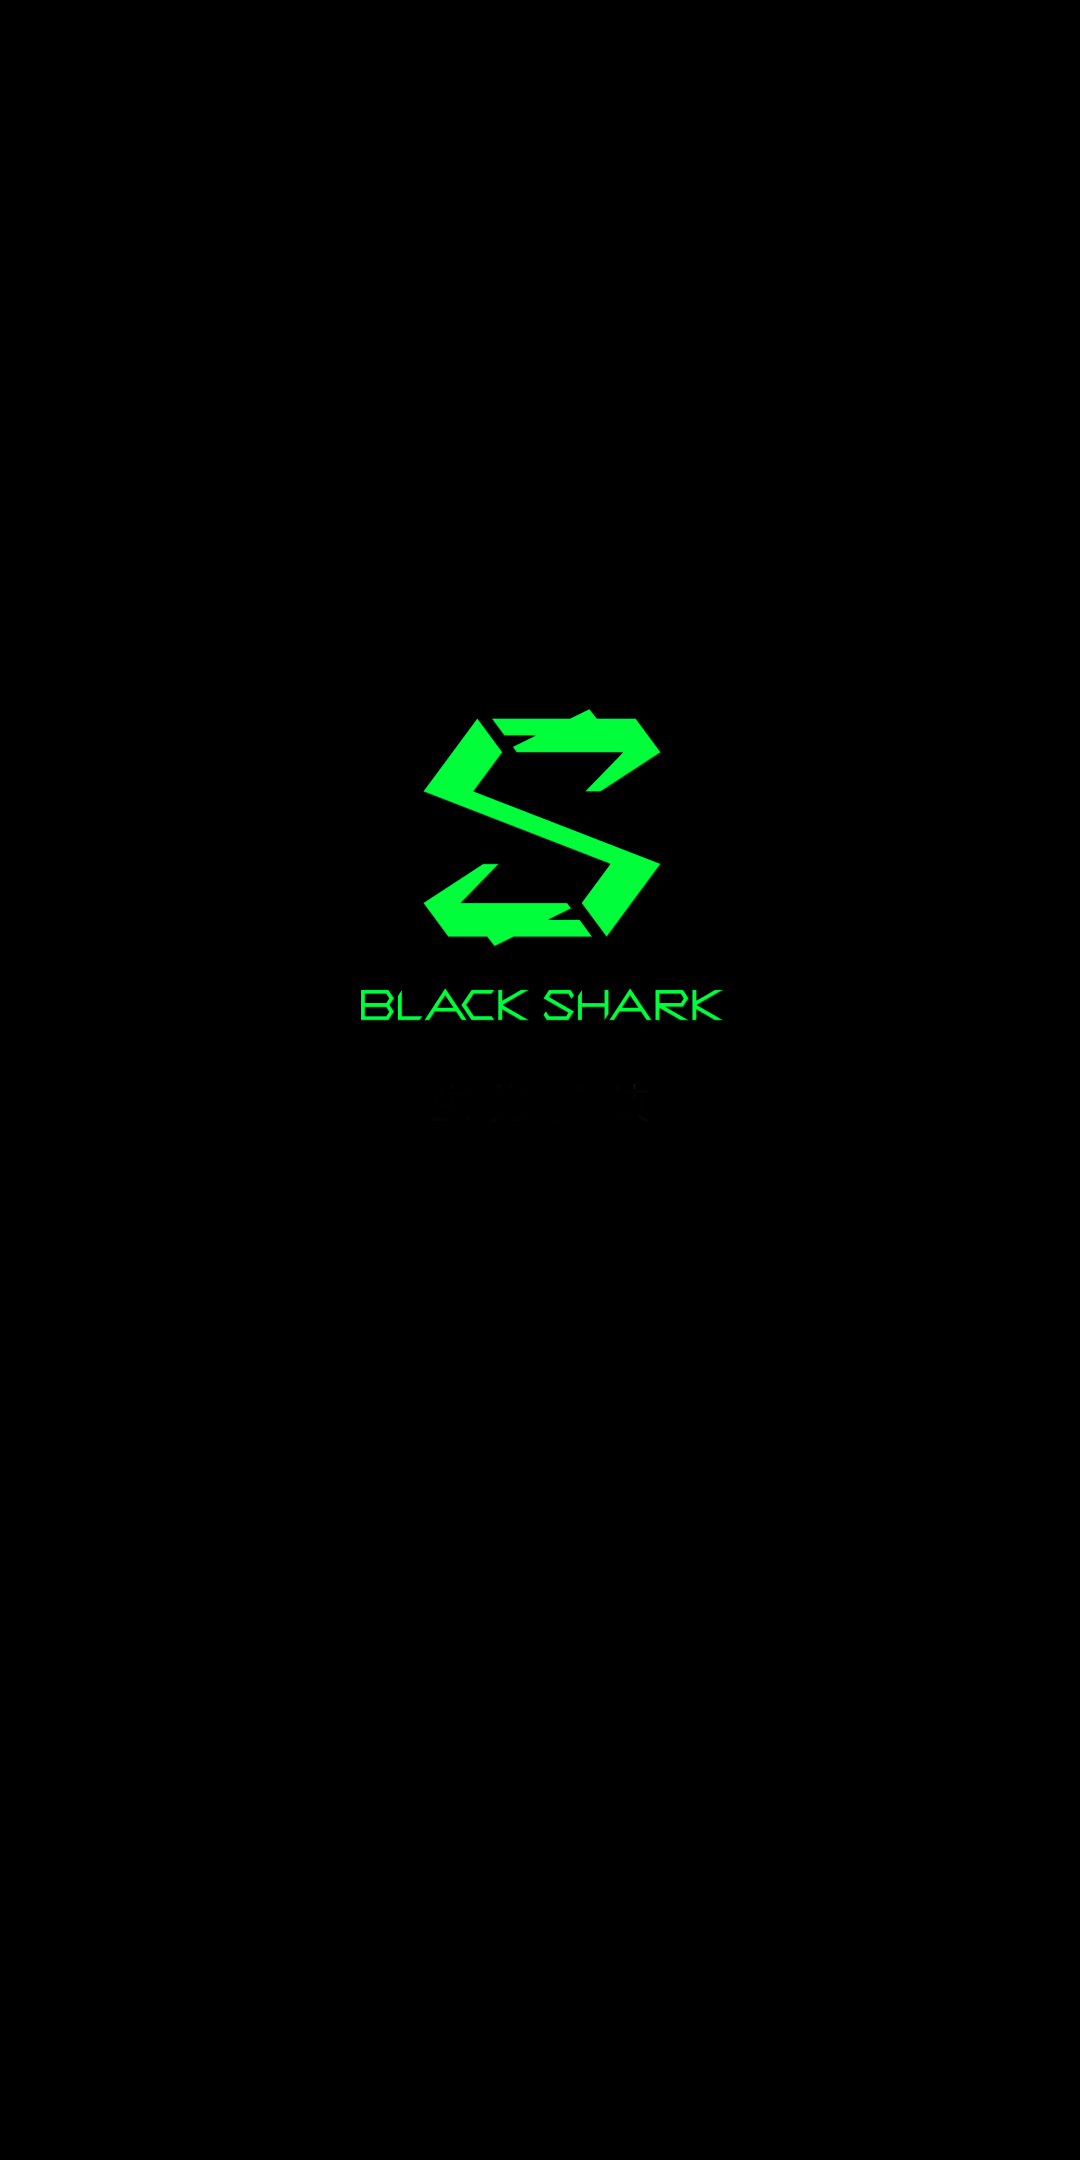 8000+ Wallpaper Black Shark Bergerak HD Paling Baru